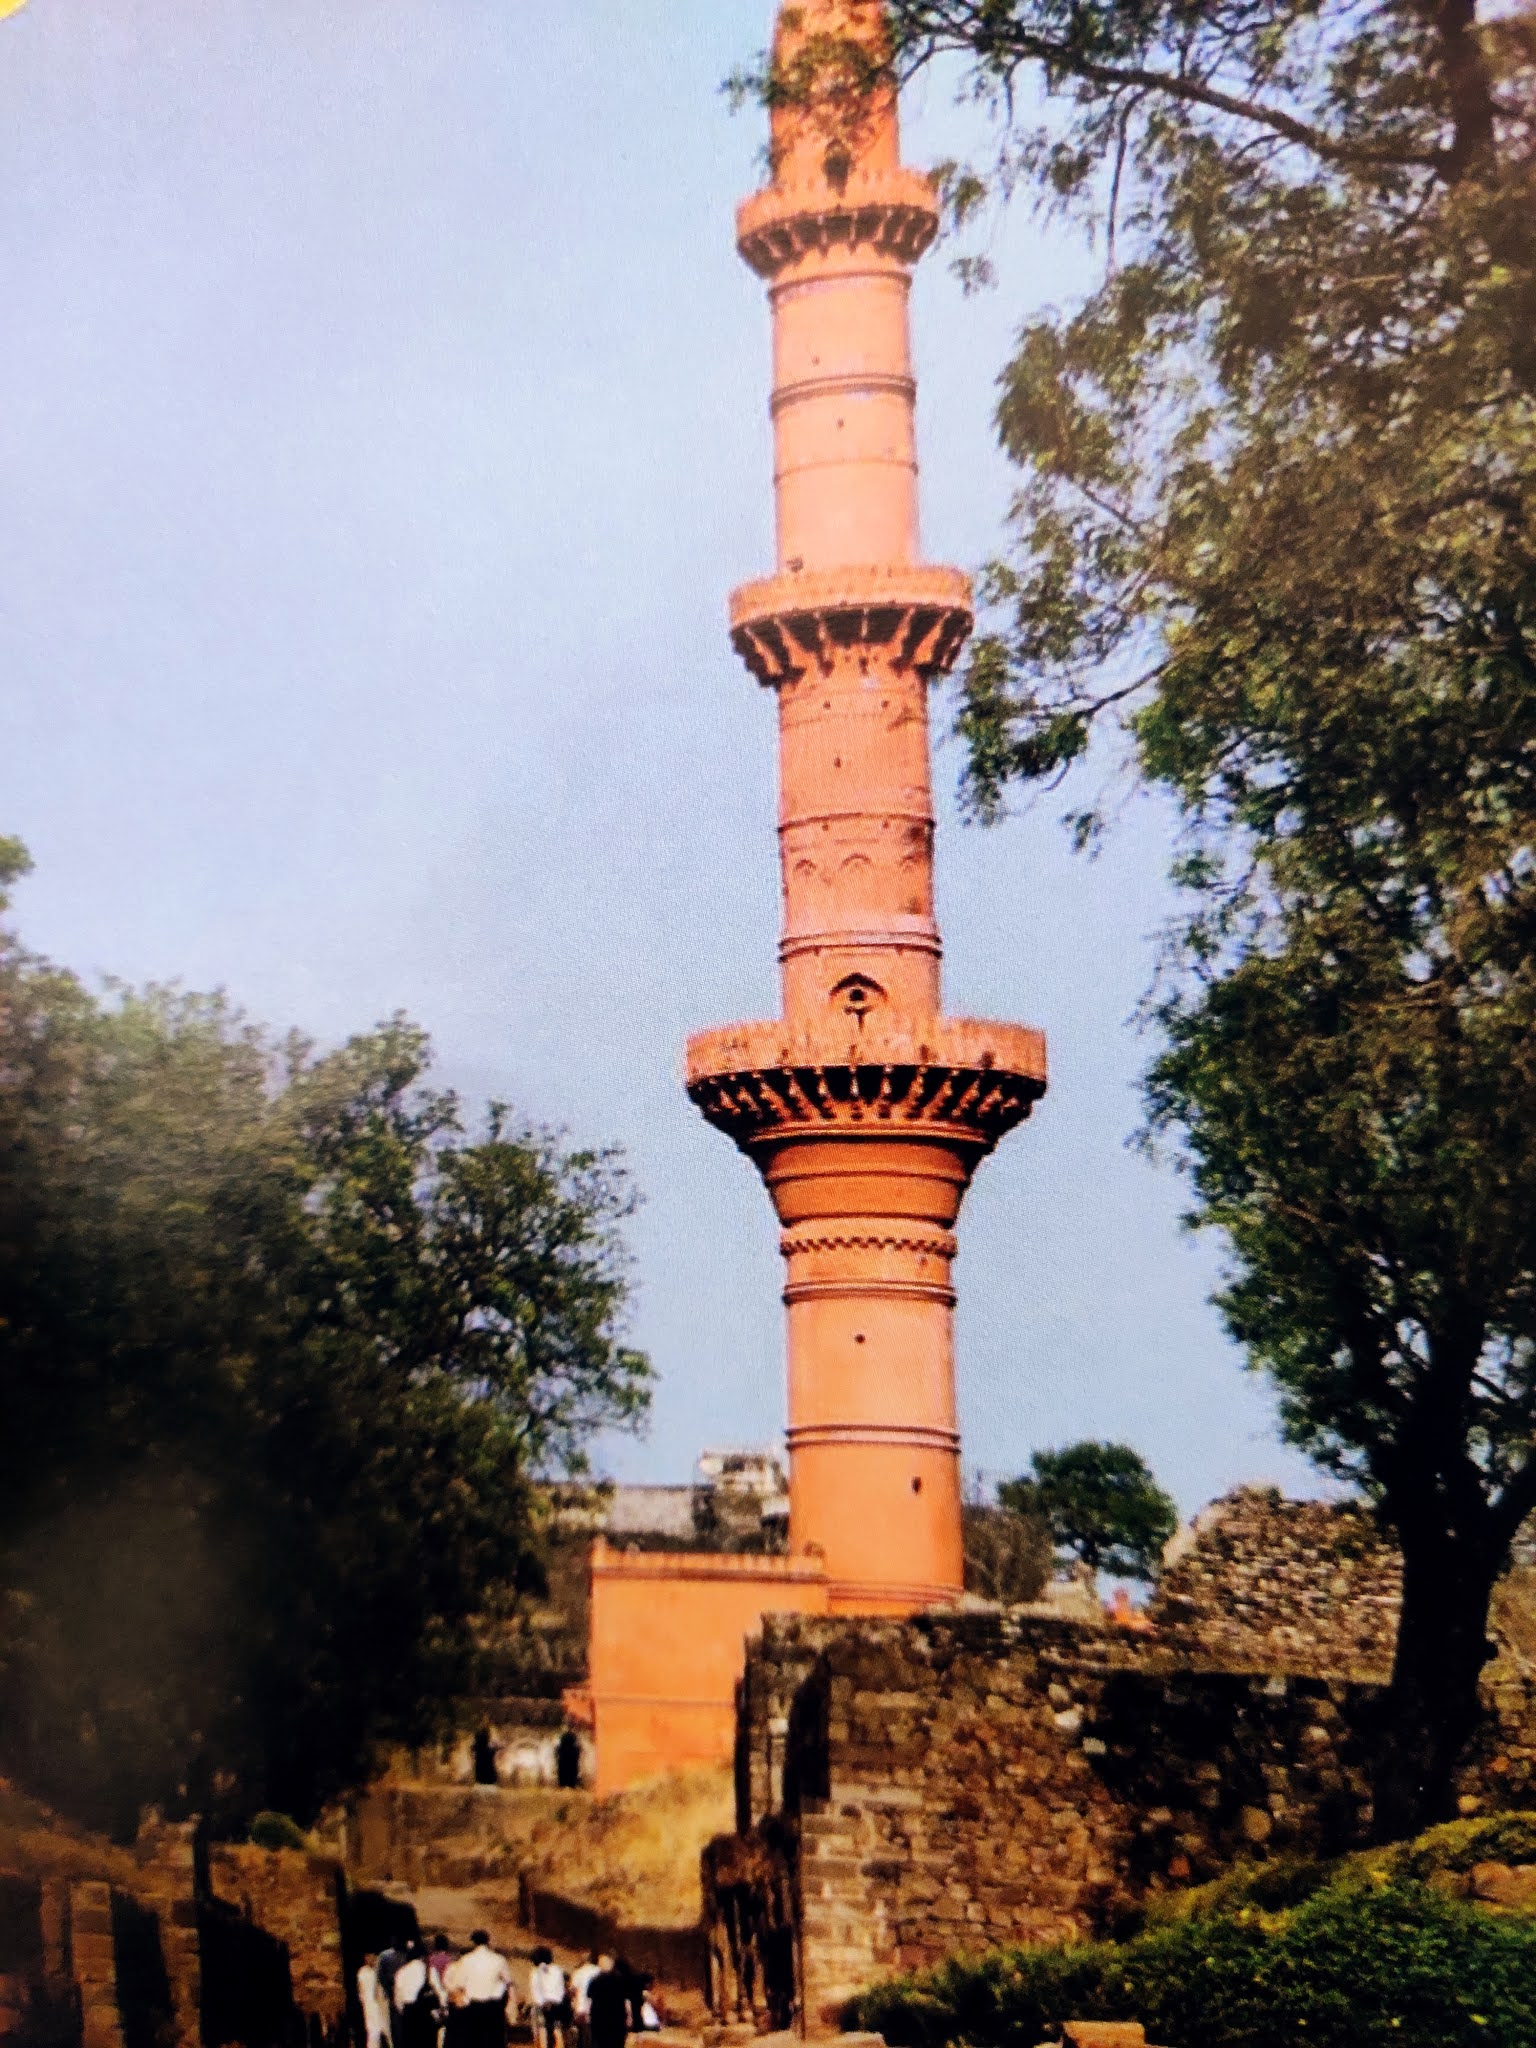 Image contains minar